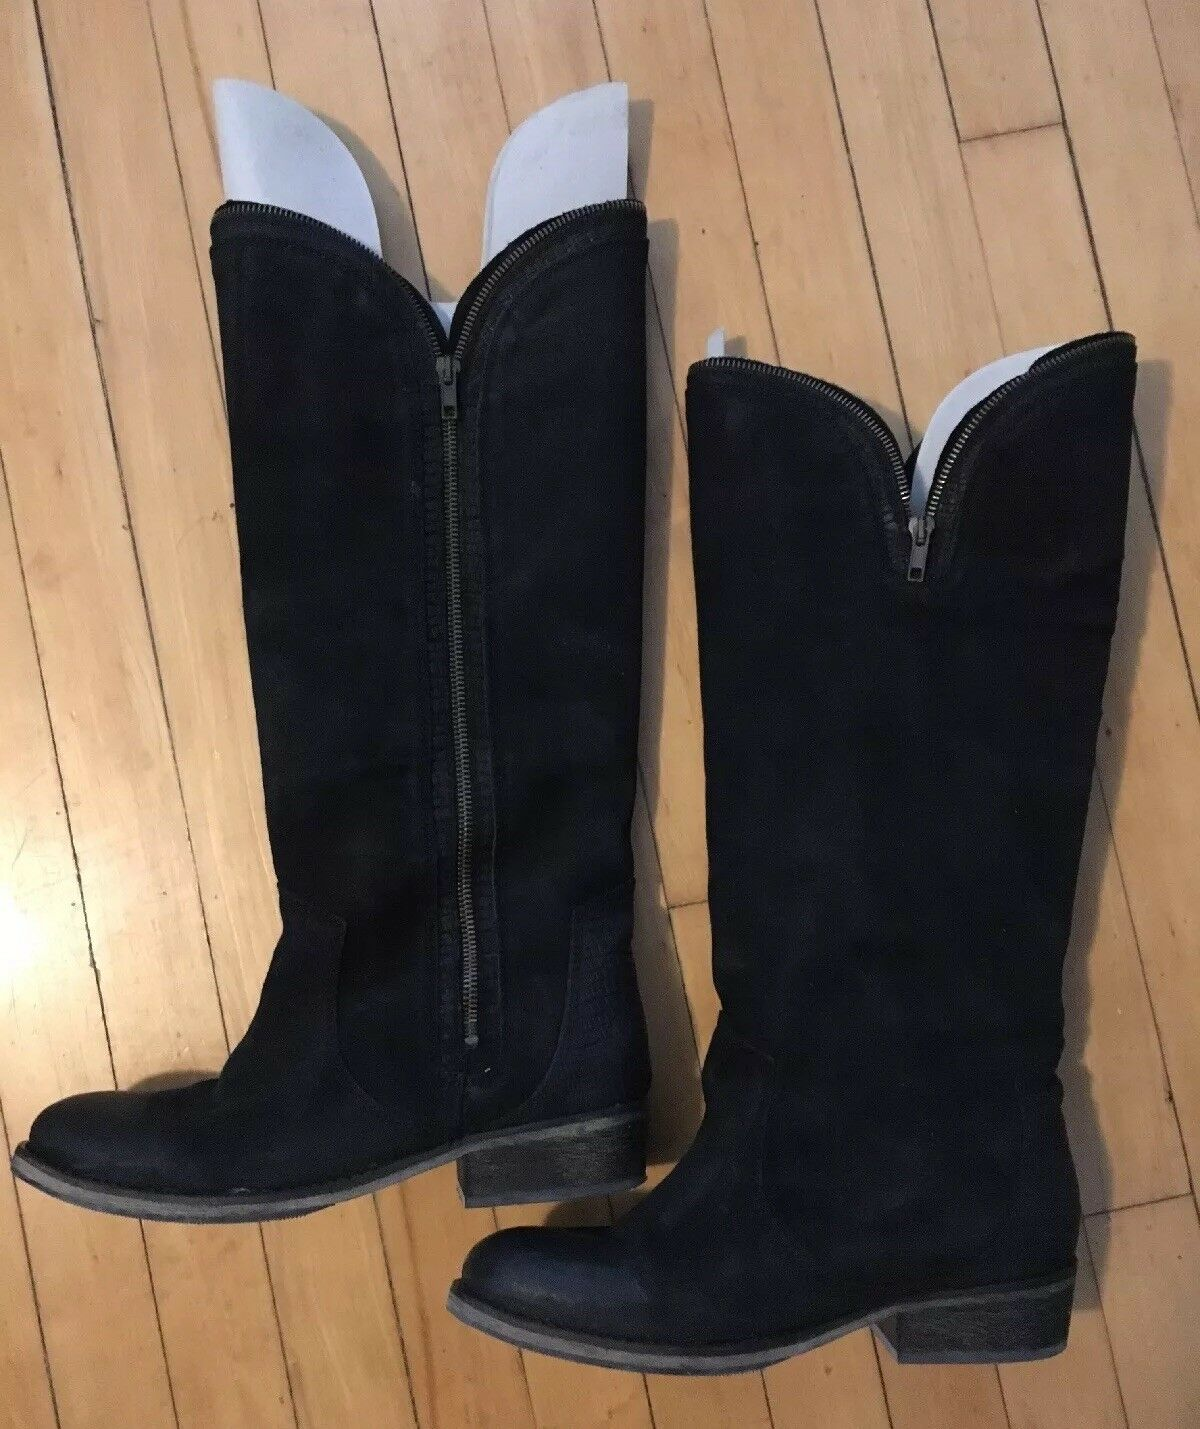 Bronx boots Zipper Detail Blk Size 8.5us org Box Exc Condition